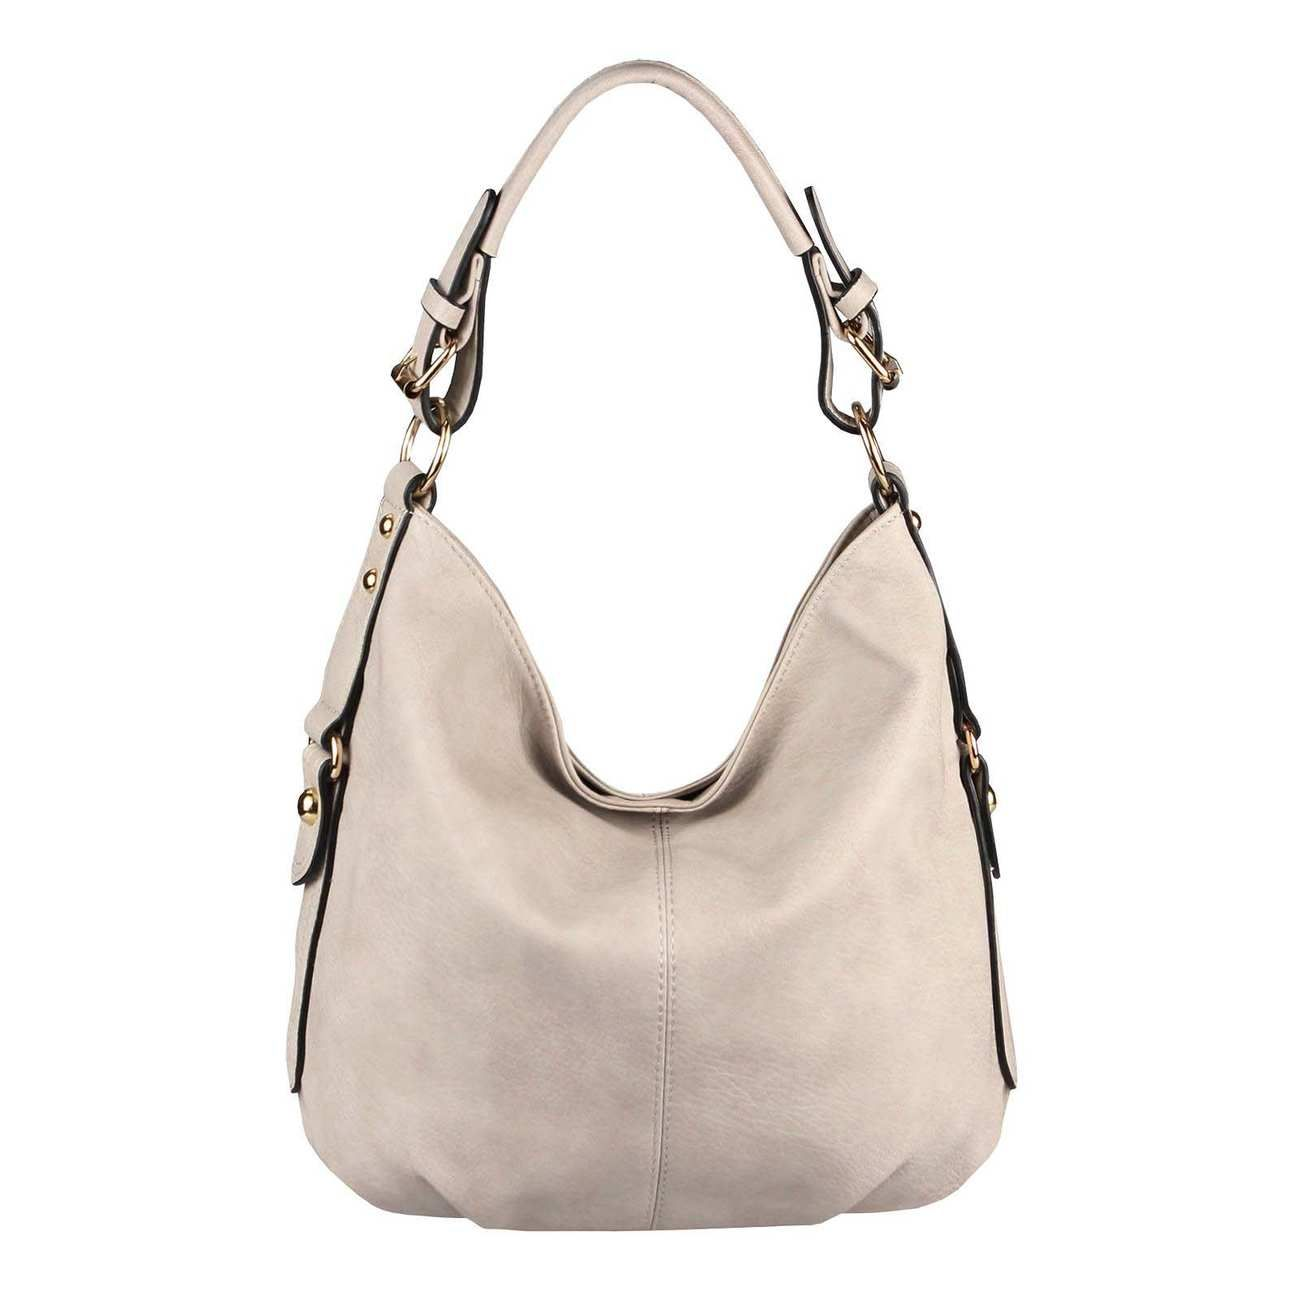 Photo of DAMEN TASCHE SHOPPER Hobo-Bag Henkeltasche Schultertasche Umhänge